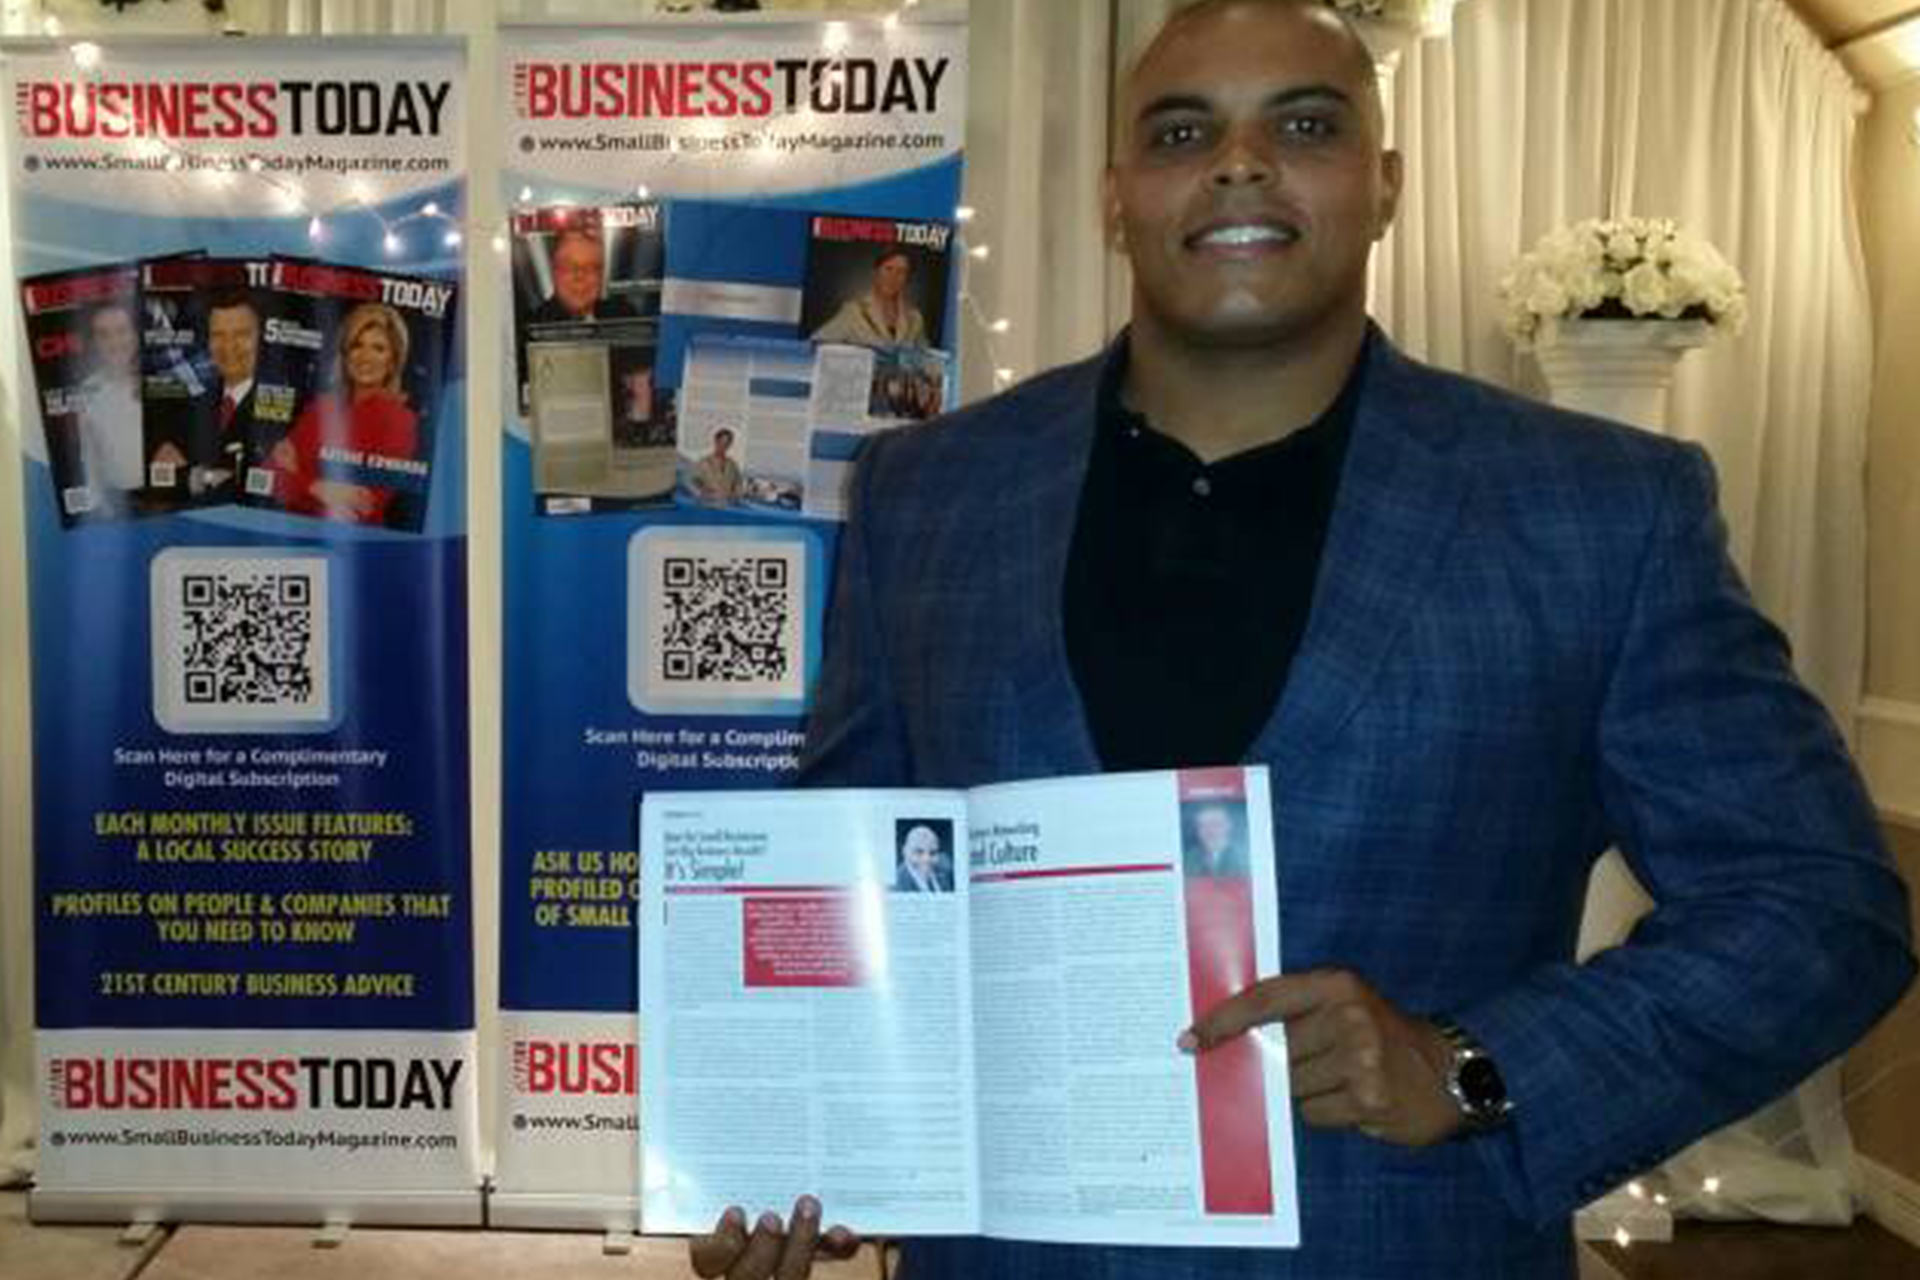 Jason Montanez Small Business Today